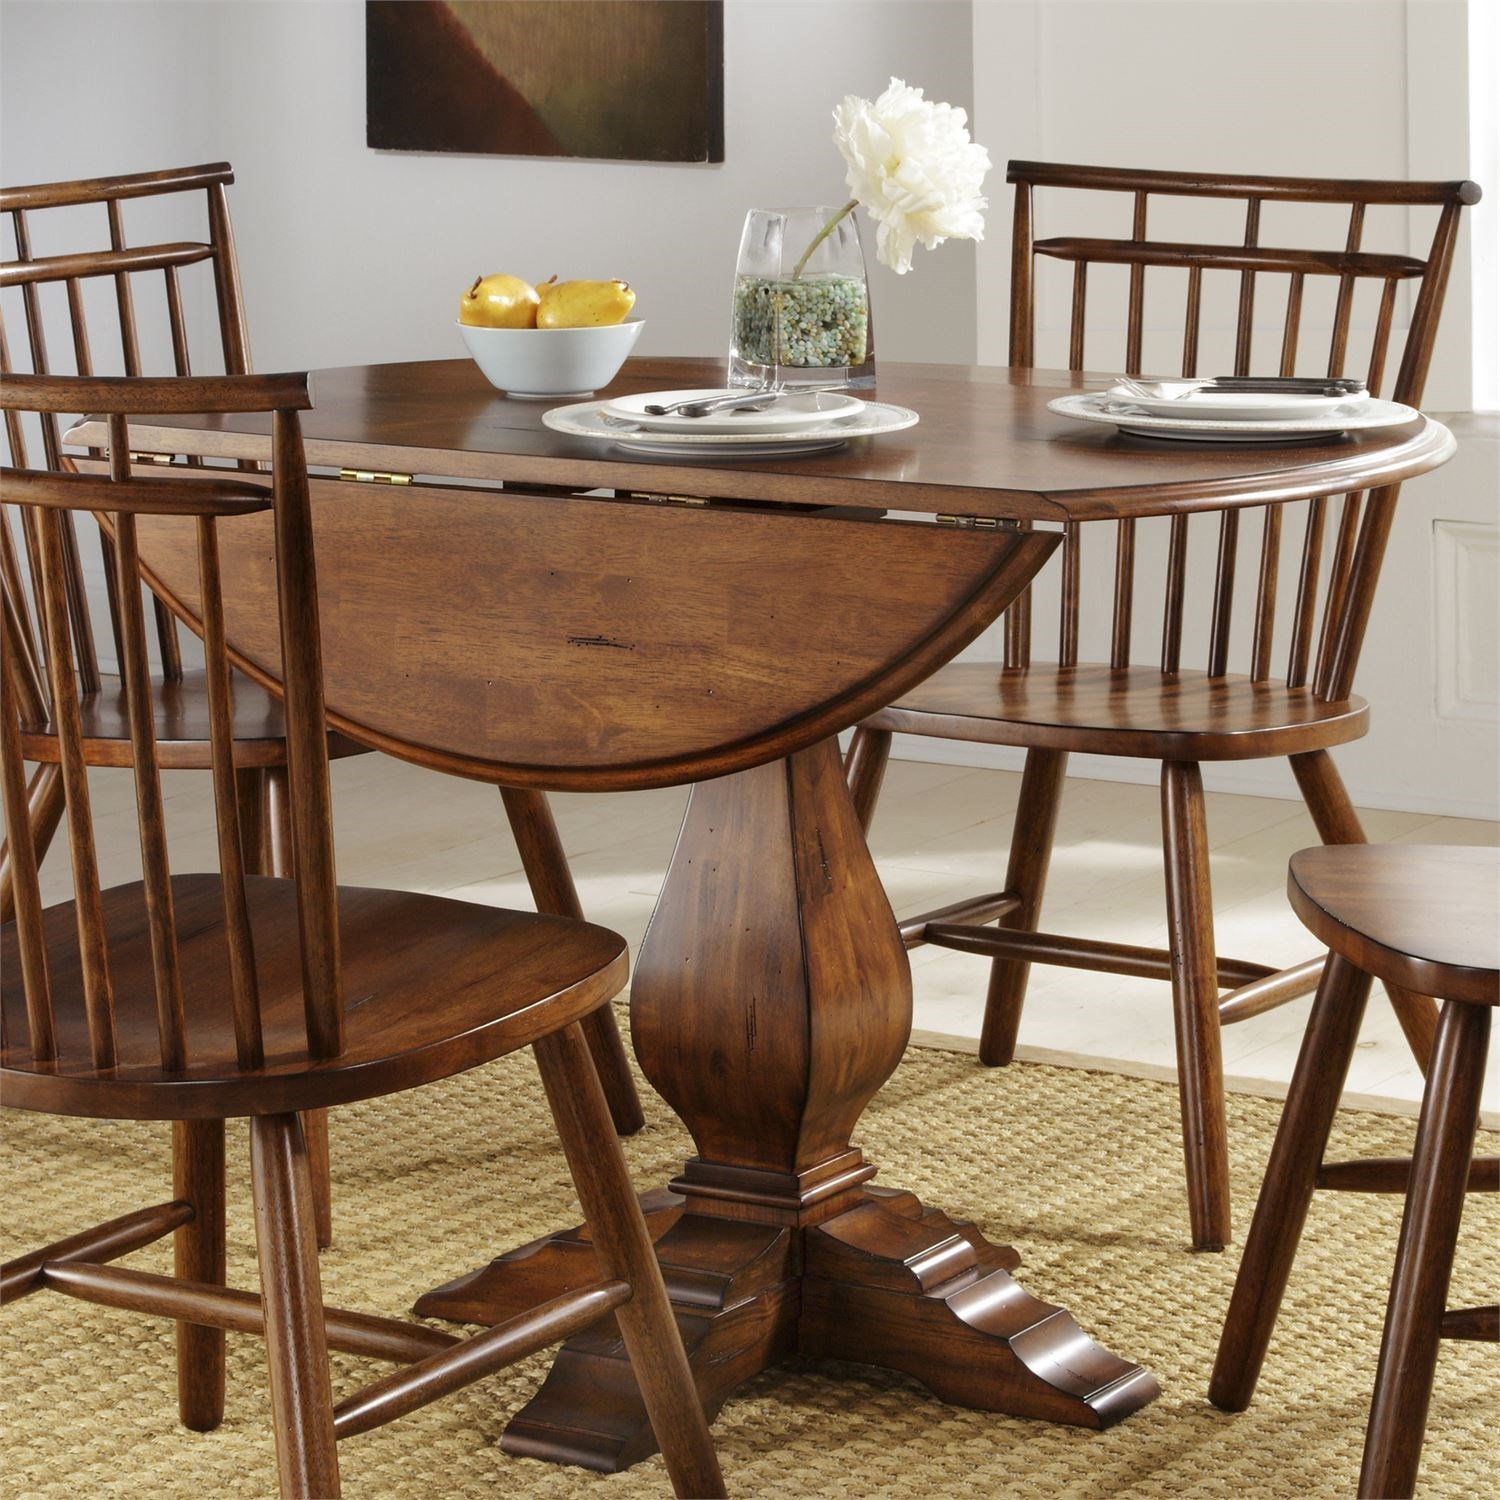 Creations II Drop Leaf Pedestal Table by Liberty Furniture at Northeast Factory Direct